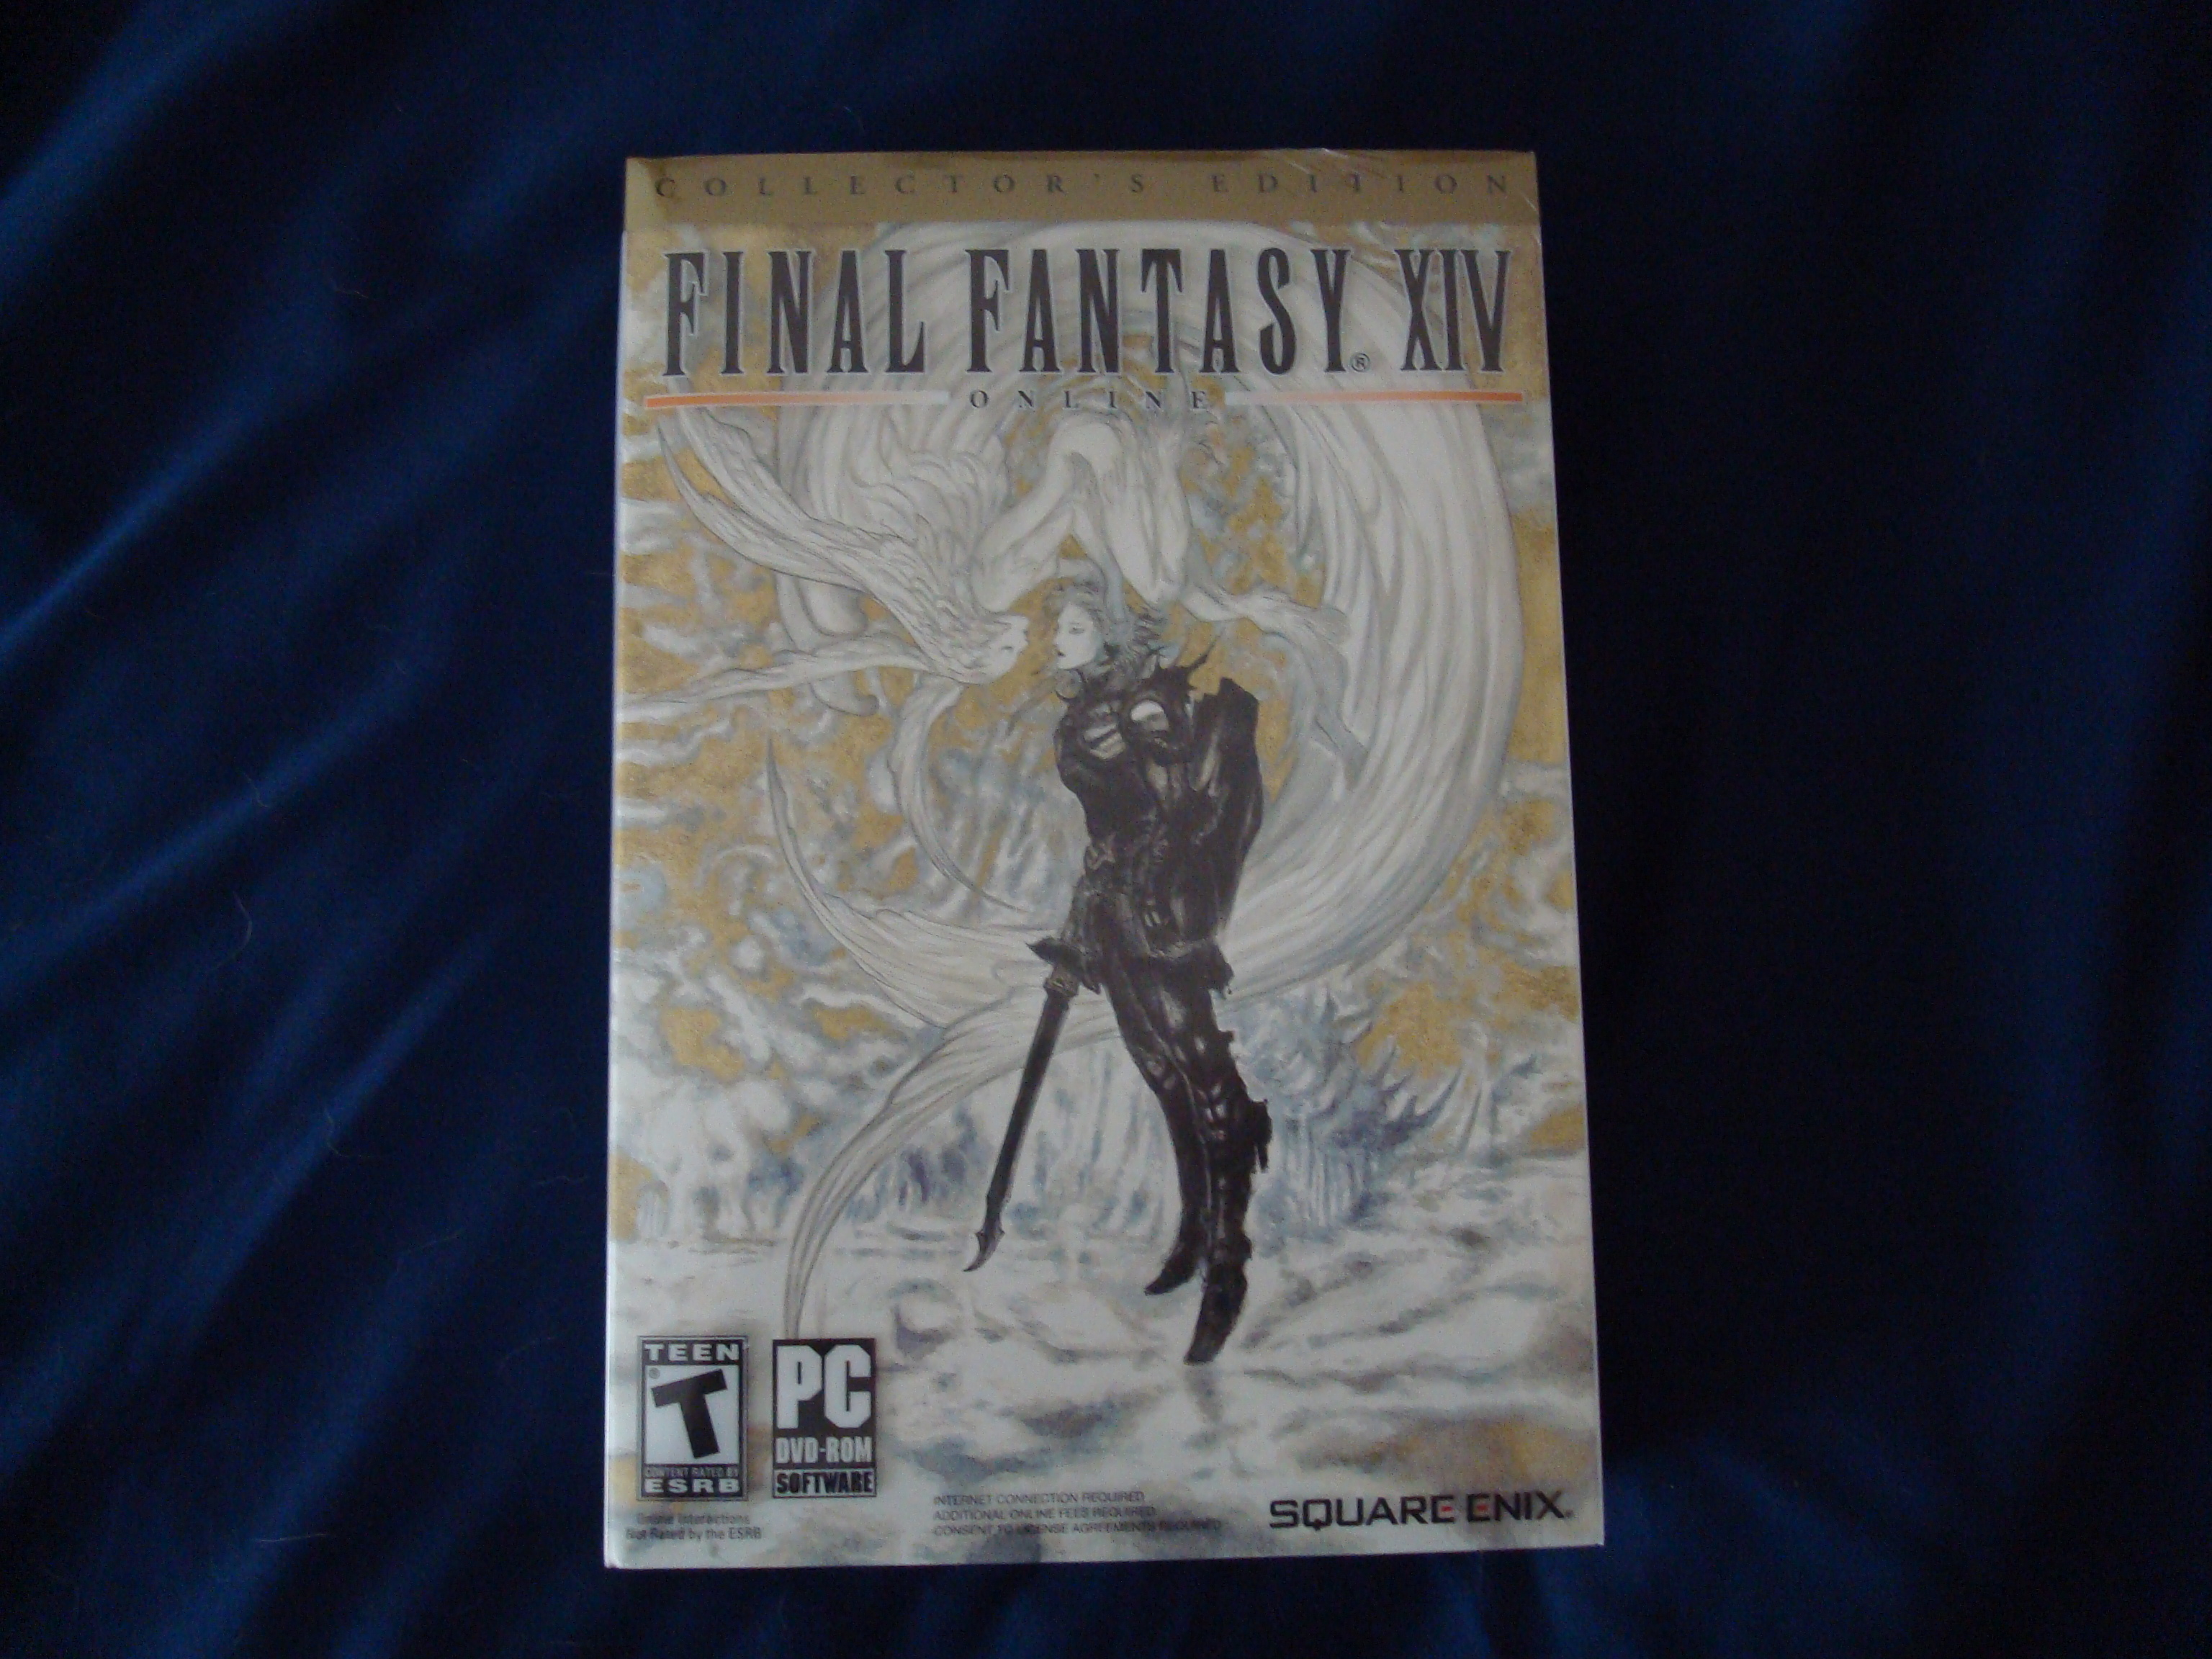 Unboxing of Final Fantasy XIV: Collector's Edition | Diehard